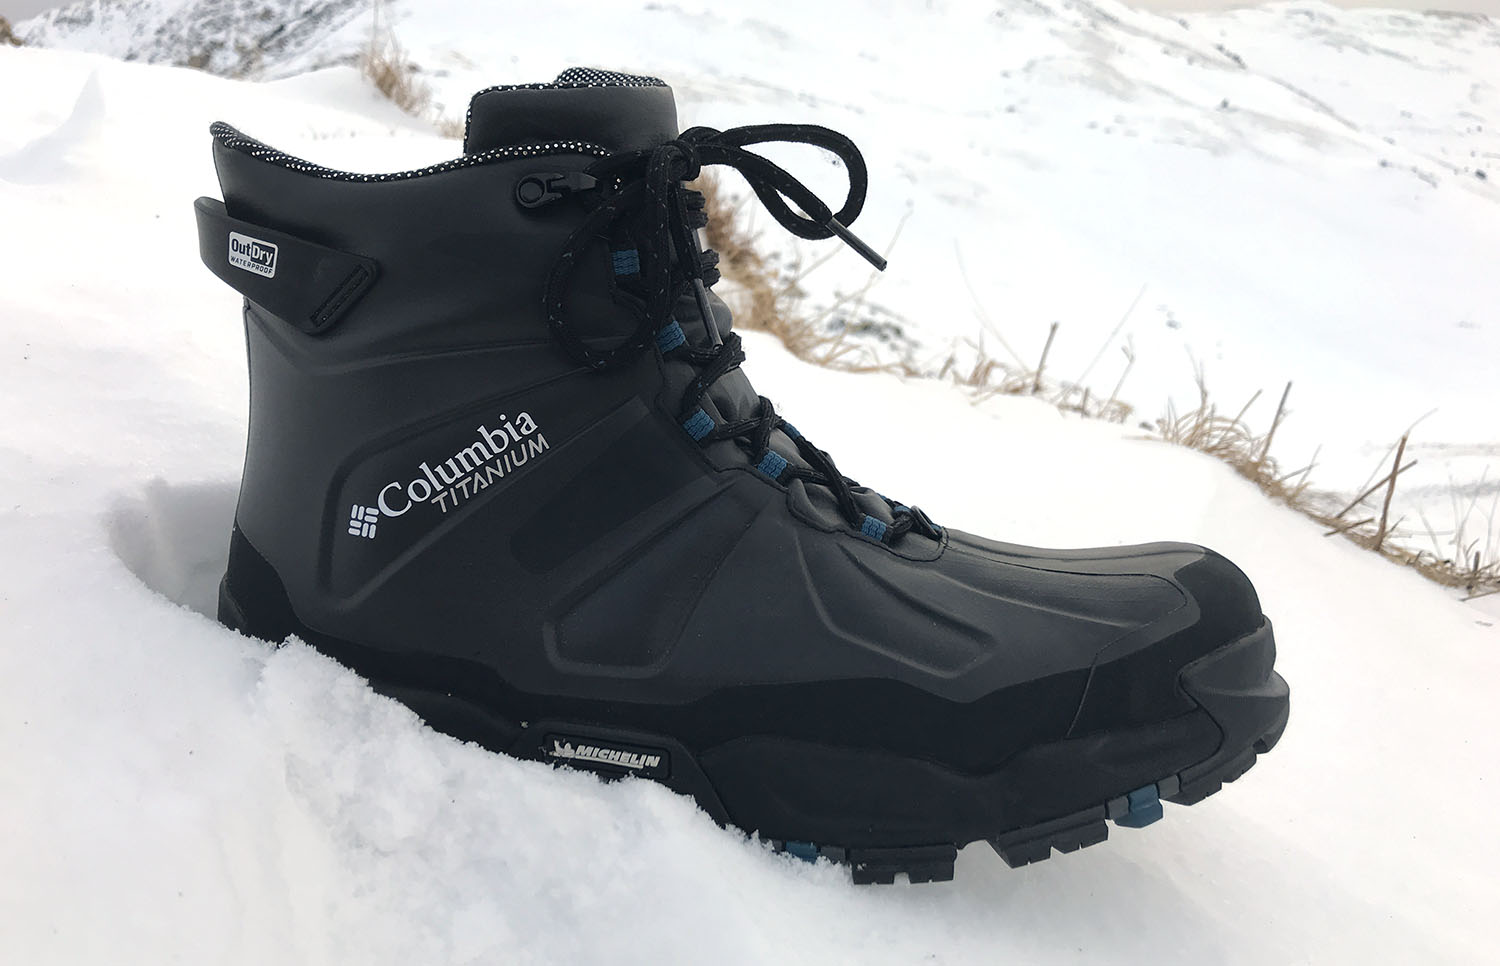 61b05dad8 Best Winter Boots for Men | GearJunkie